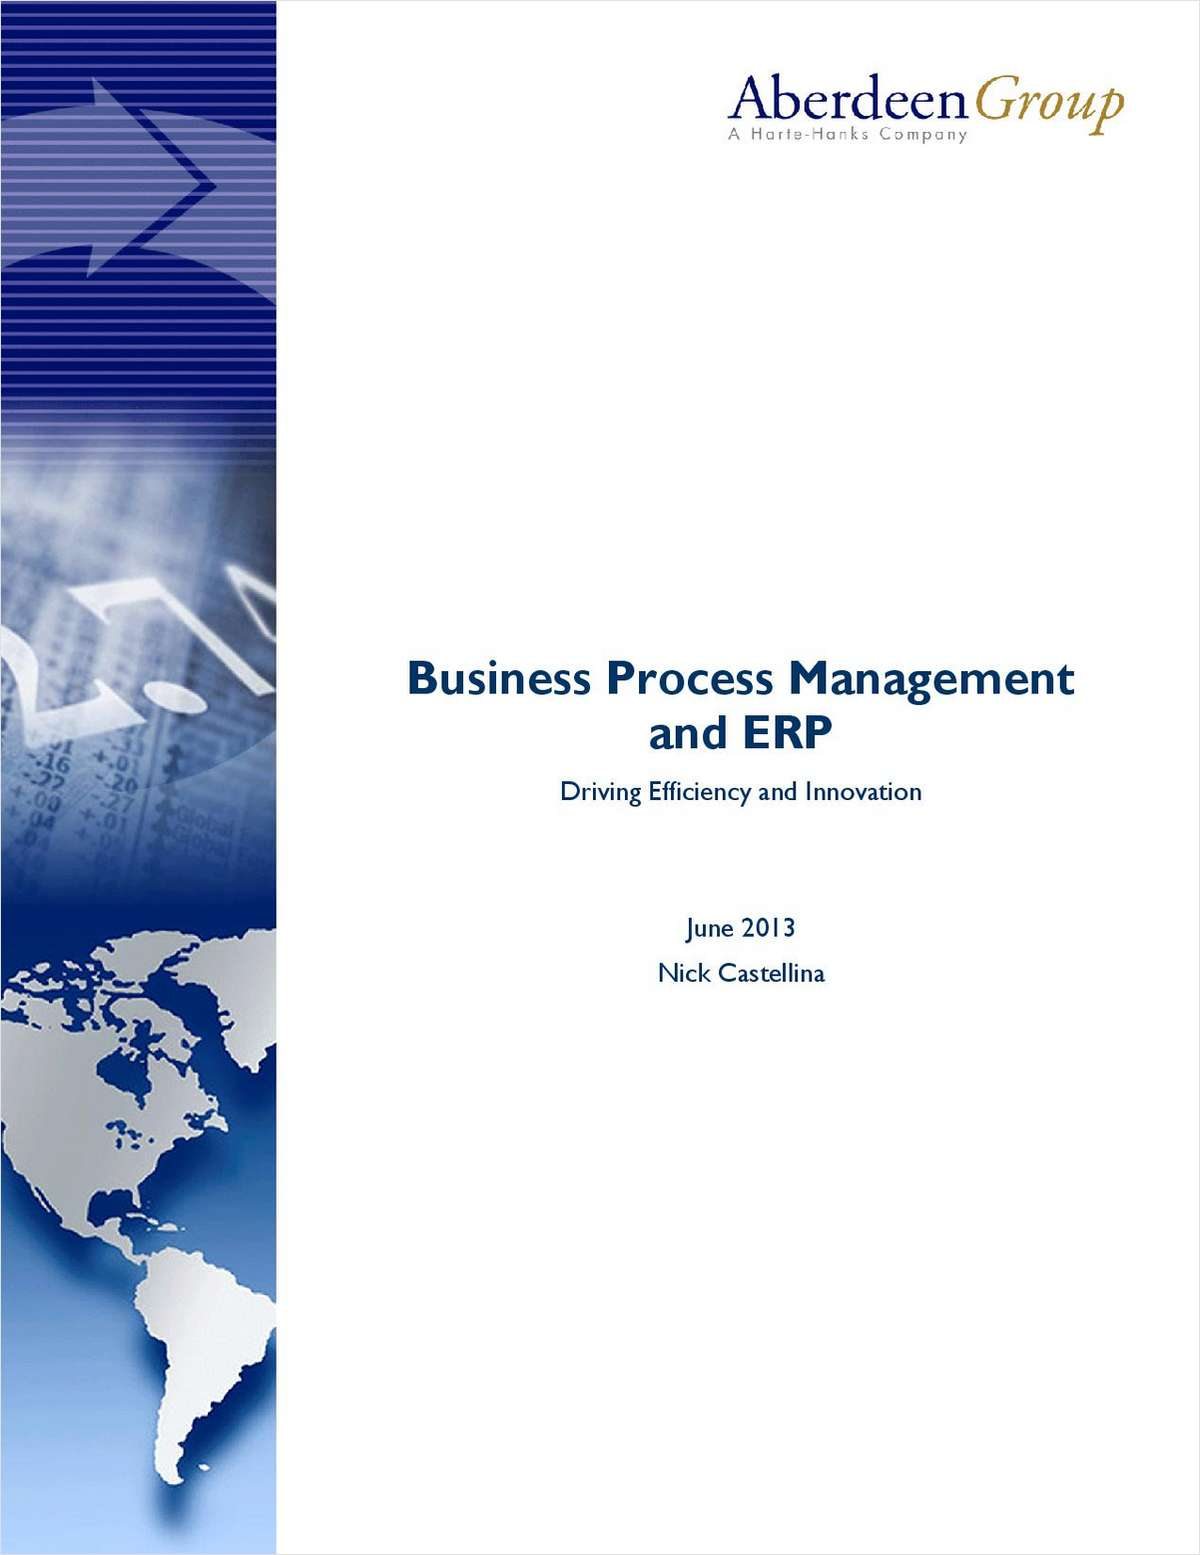 BPM and ERP: Driving Efficiency and Innovation